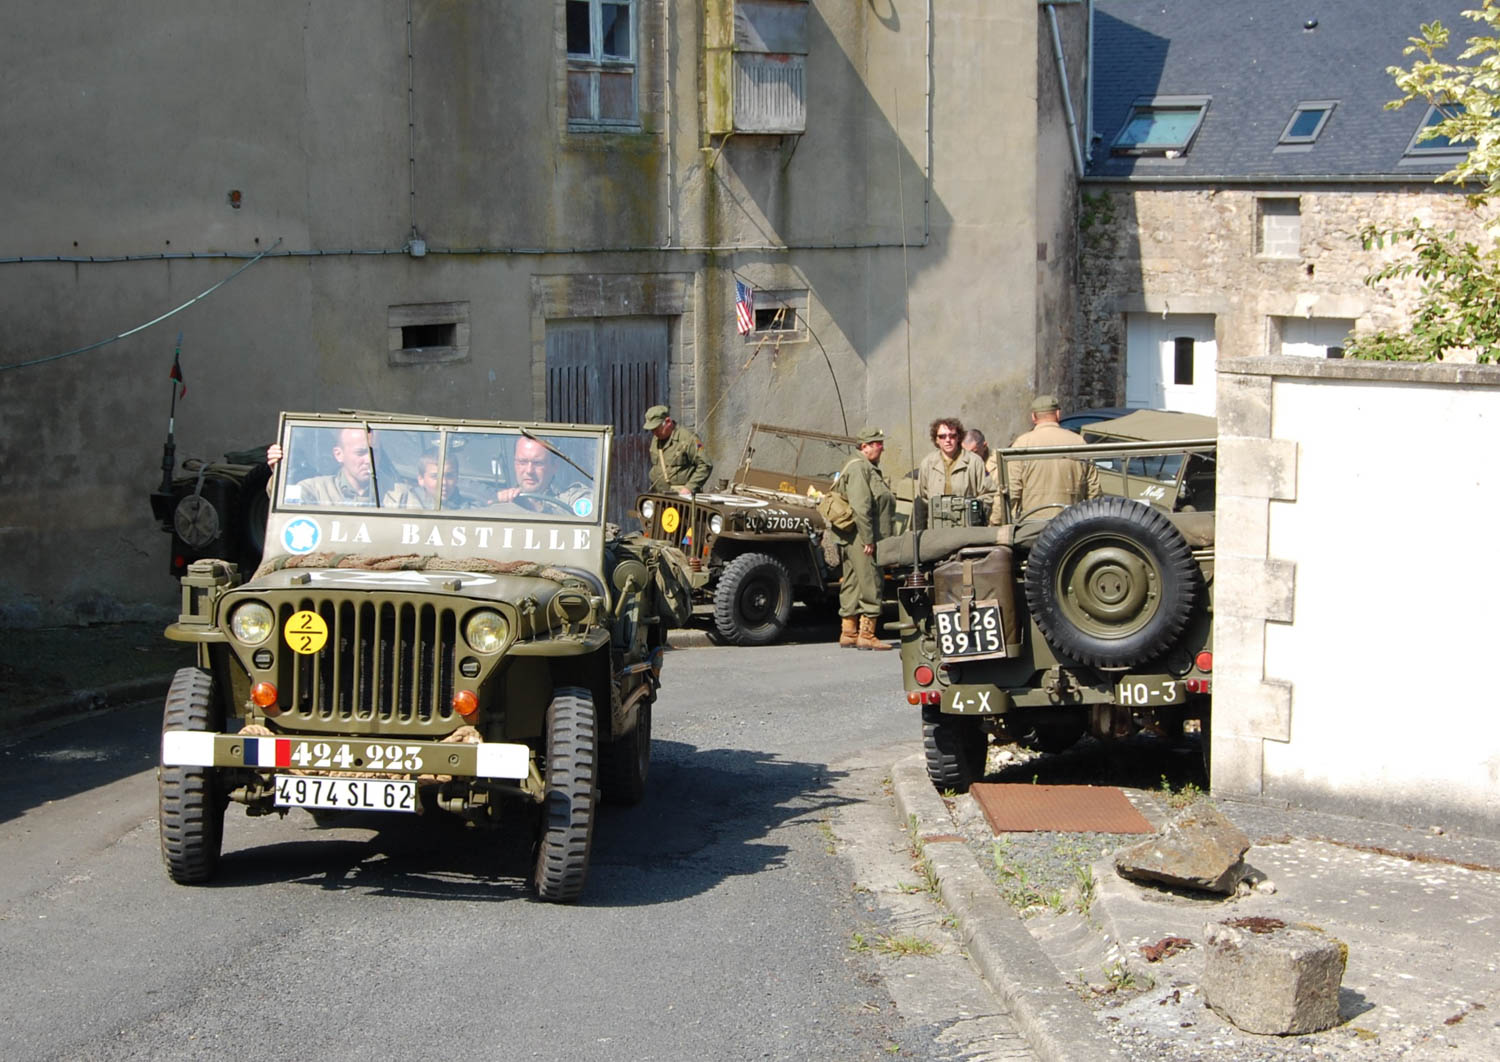 Jeep owners converge on Vierville for the annual collector swap meets around the D-Day anniversary.